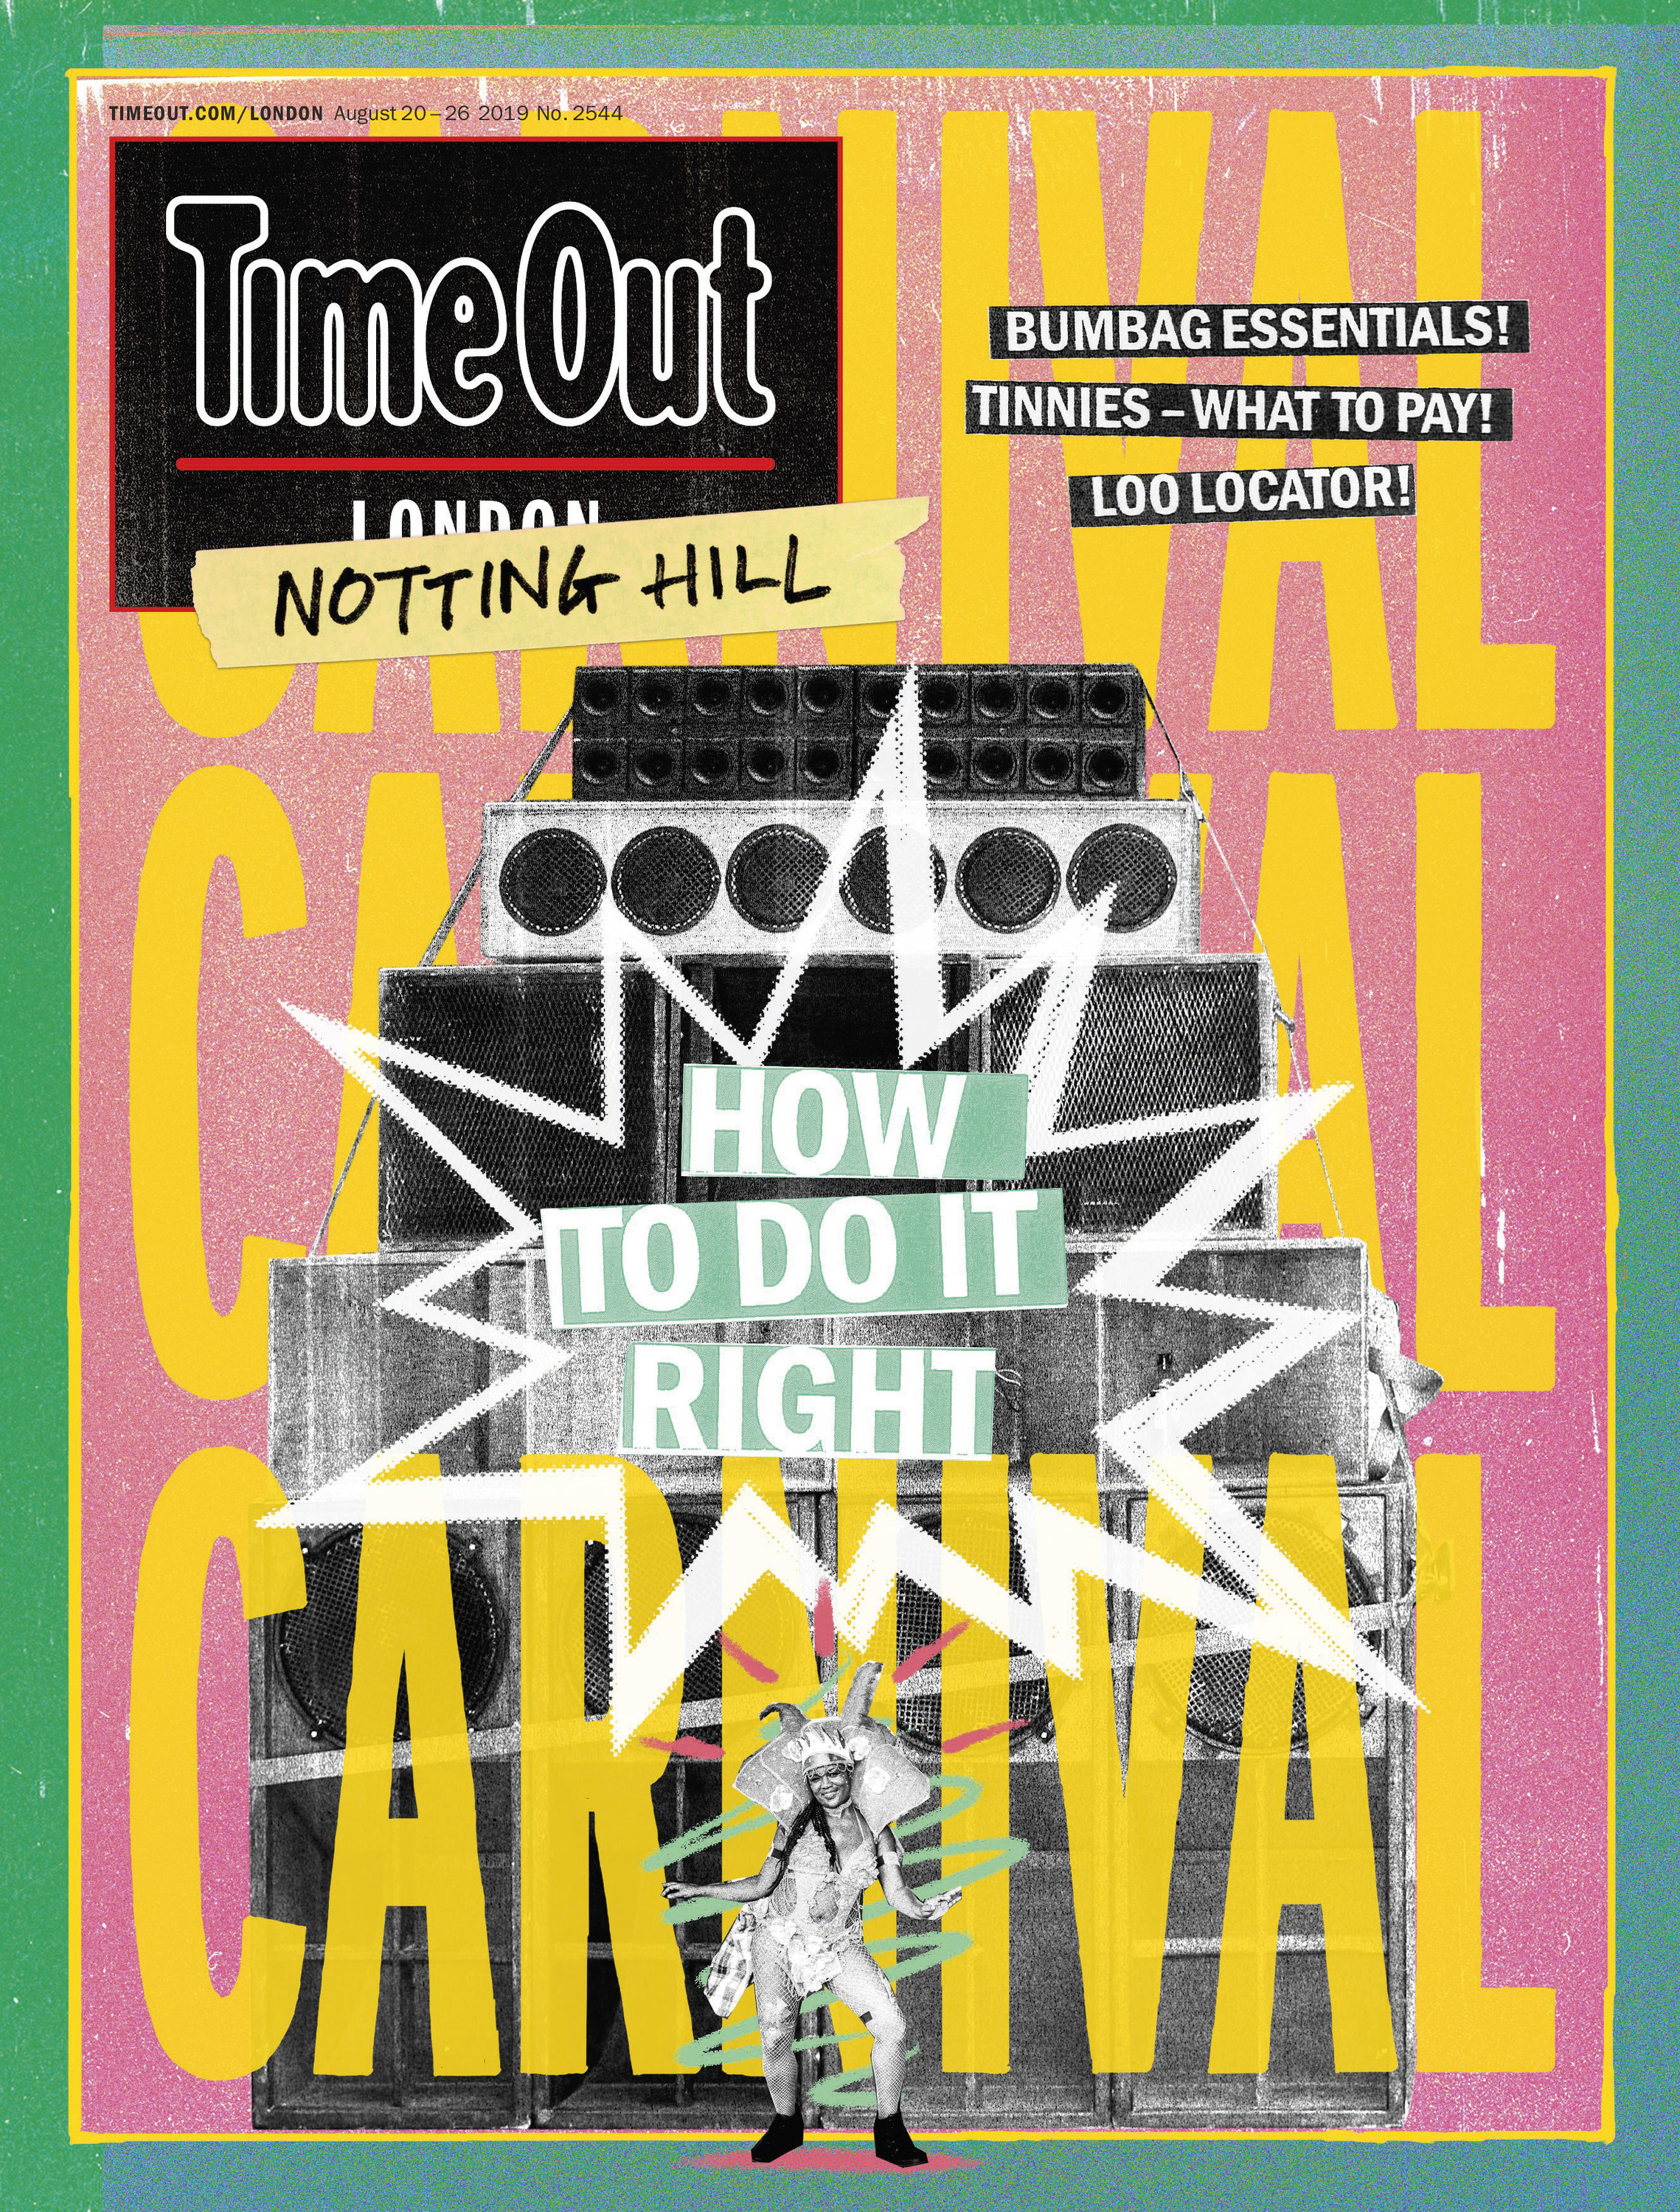 2544 COVER Carnival.indd